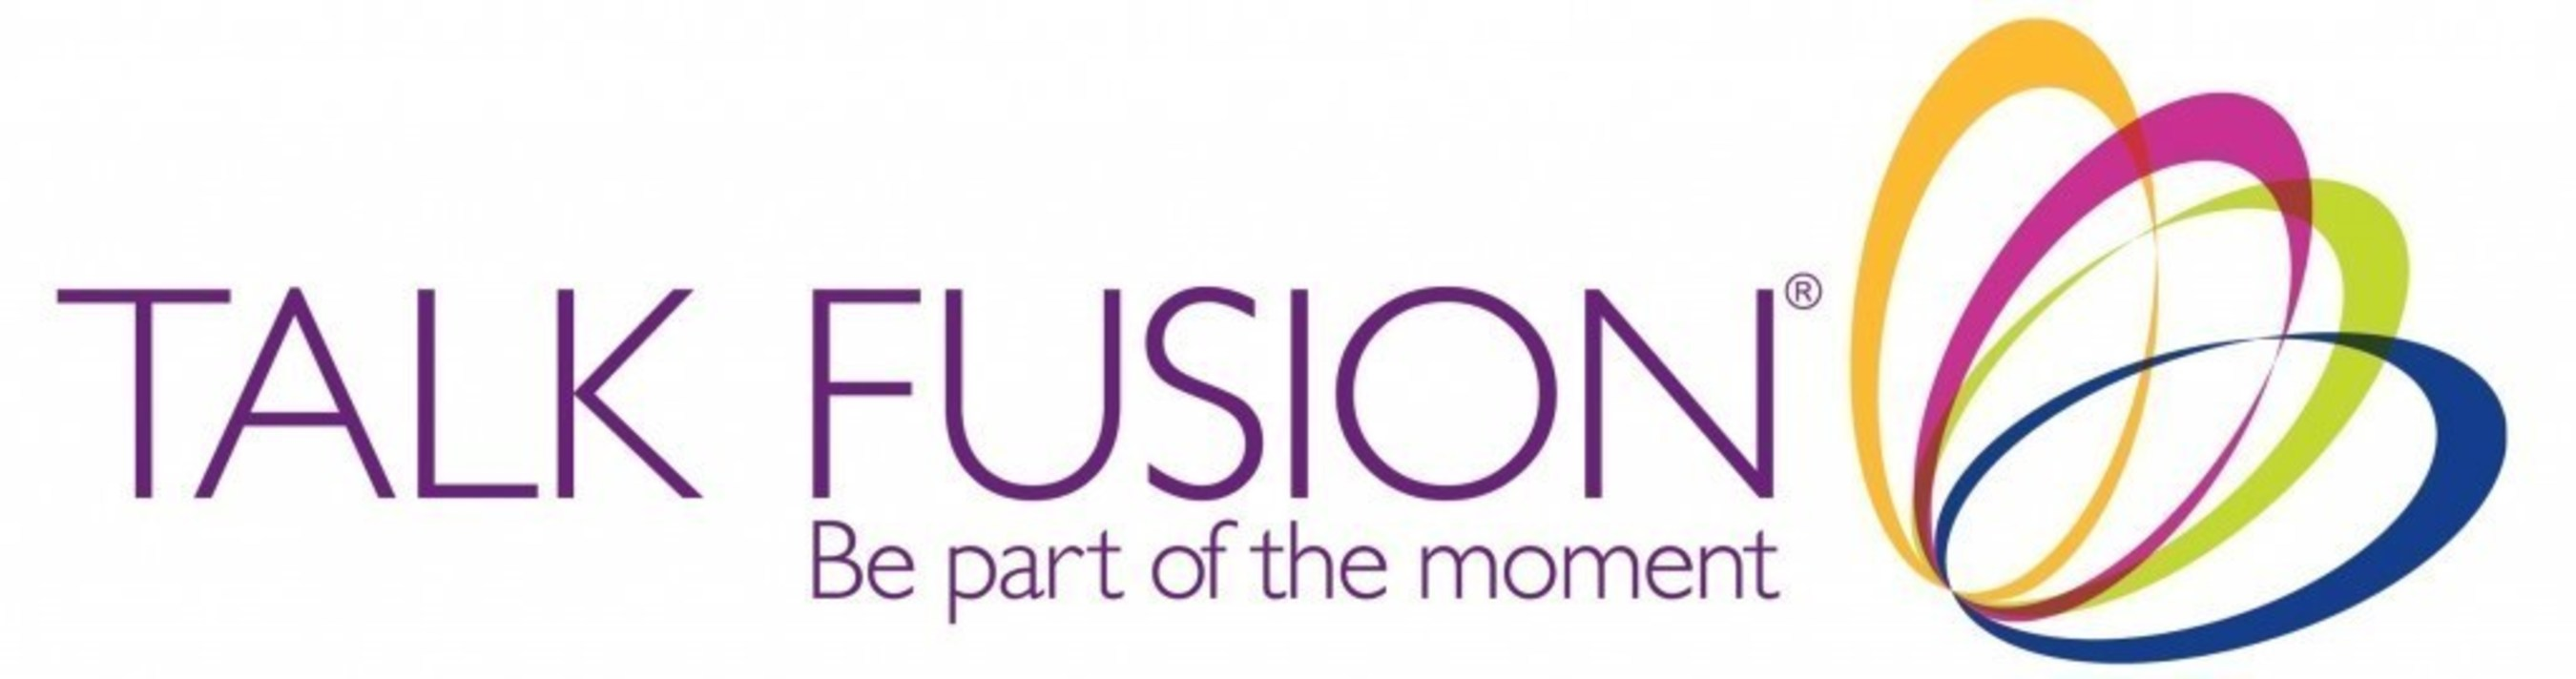 Talk Fusion launches all-in-one Video Marketing Solution Free Trials.